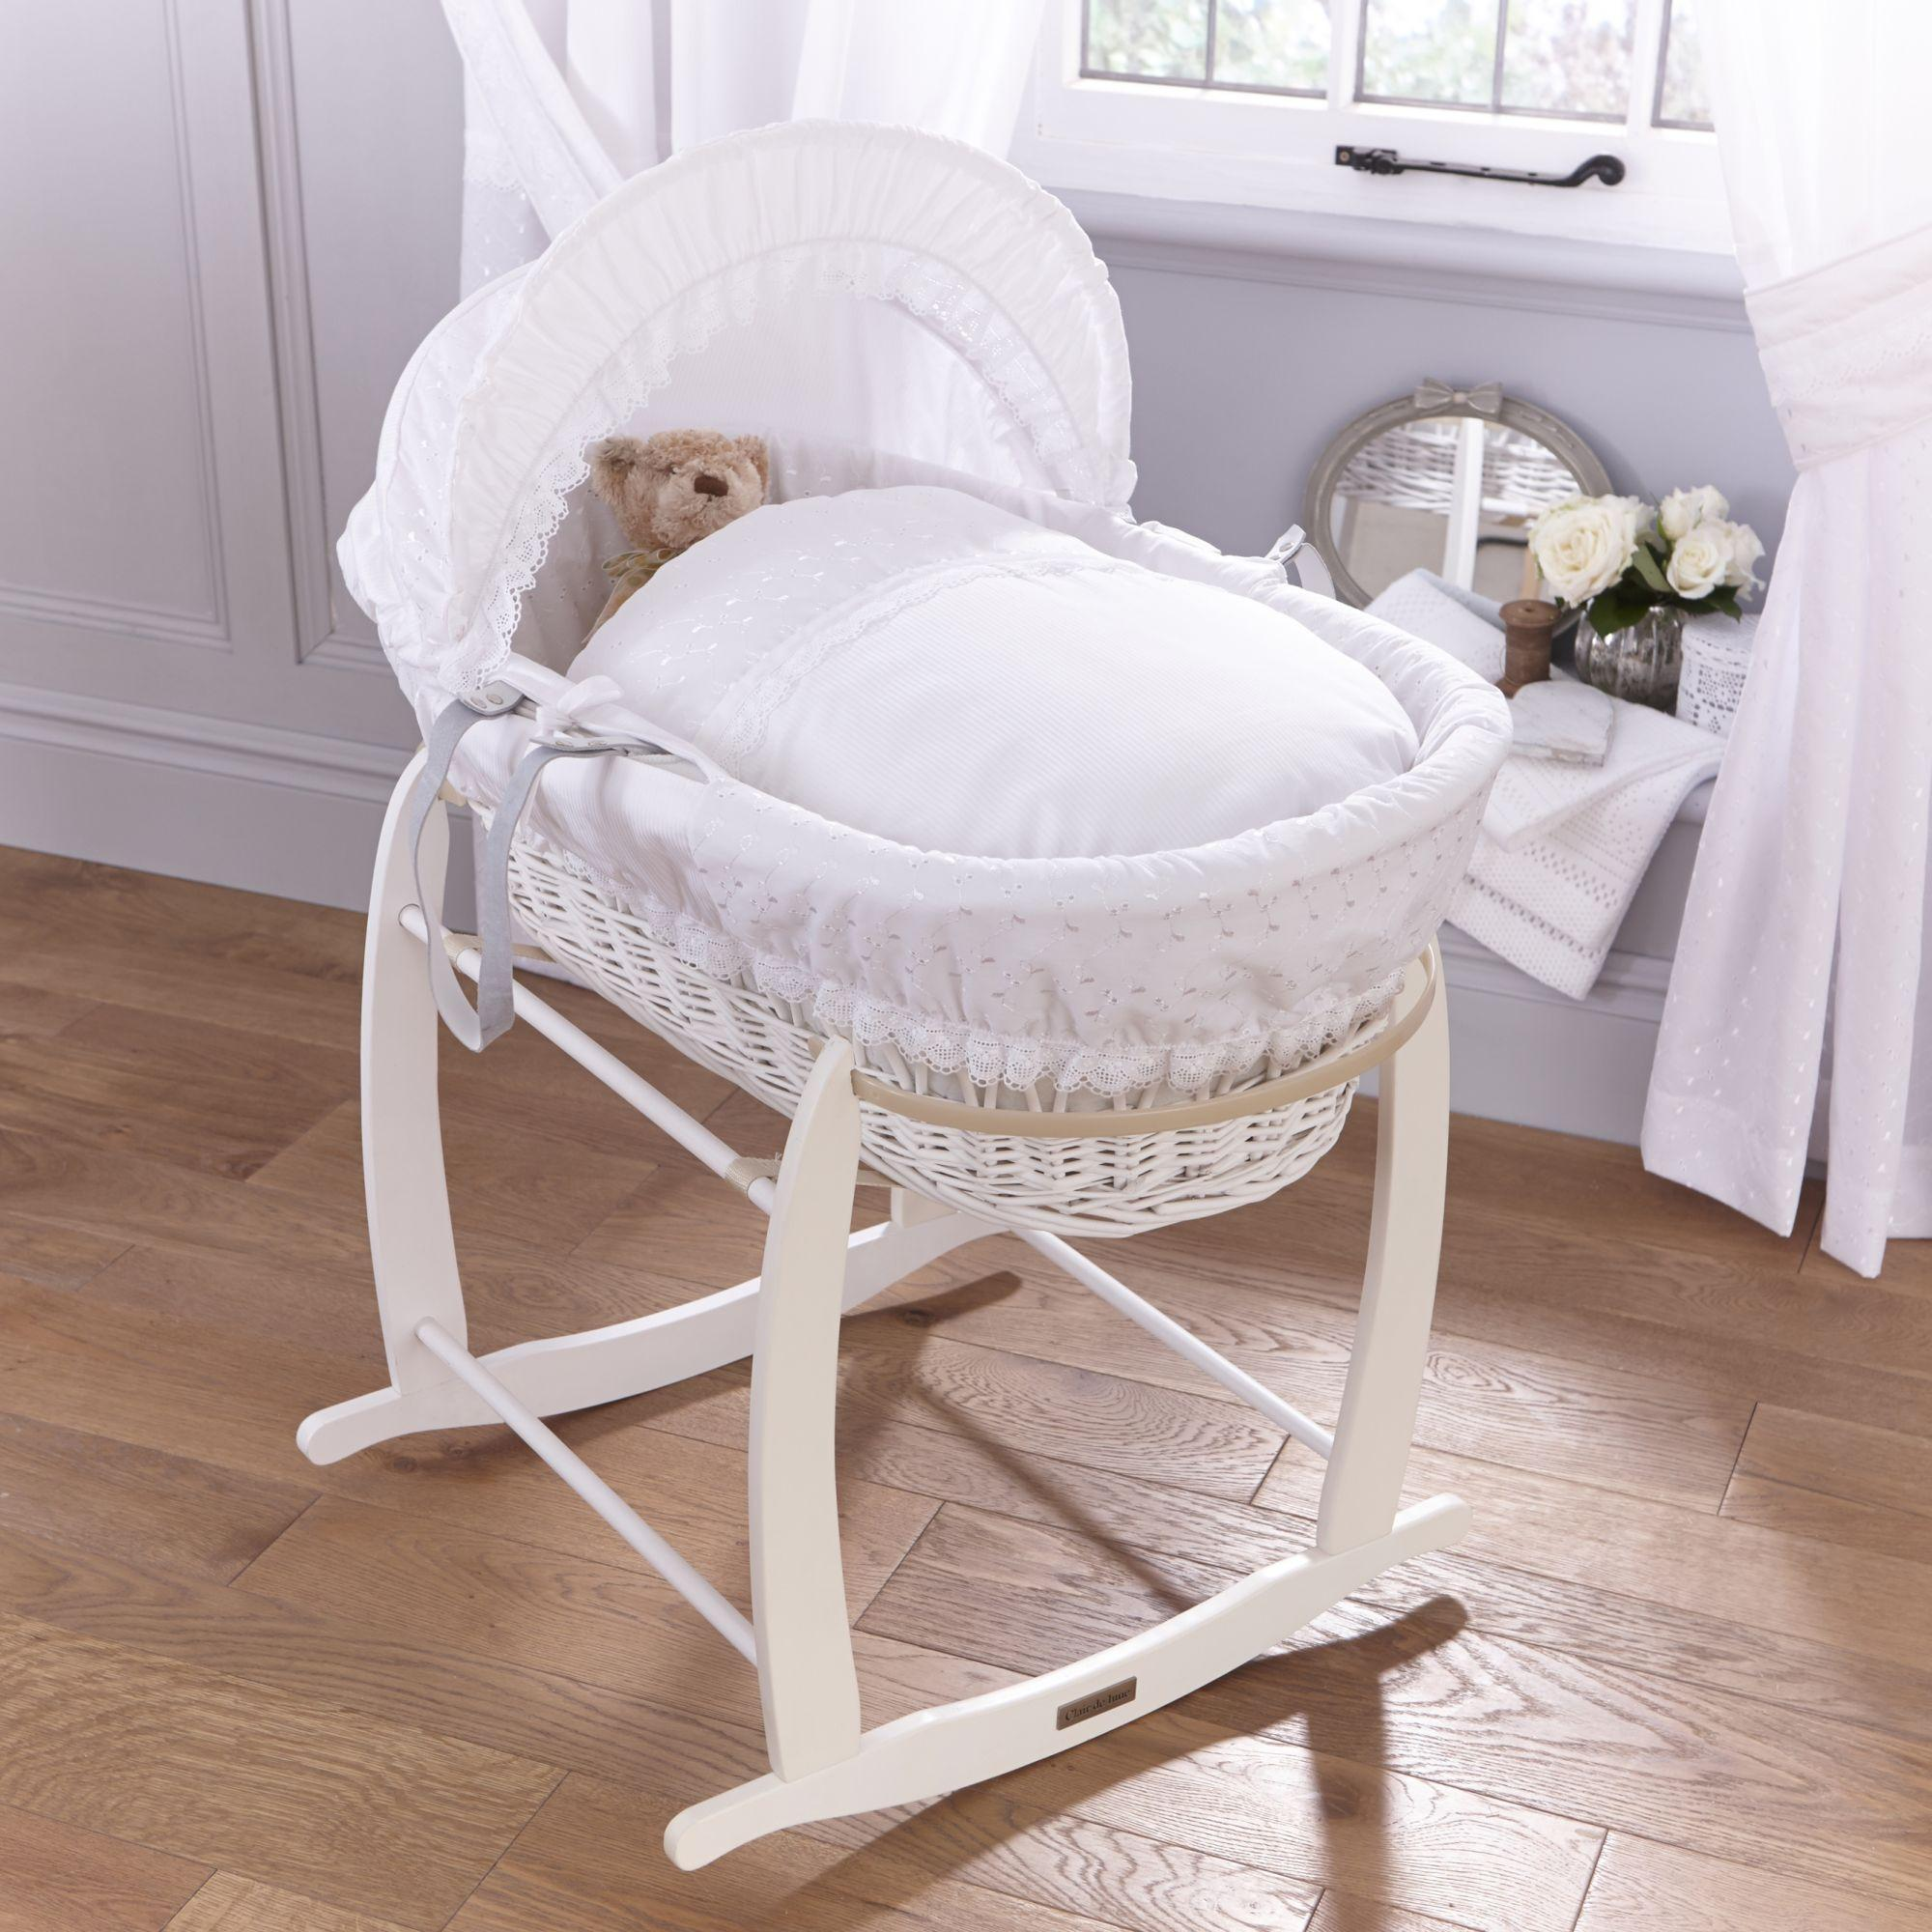 Handmade Wicker Moses Basket : Clair de lune vintage charcoal wicker moses basket white